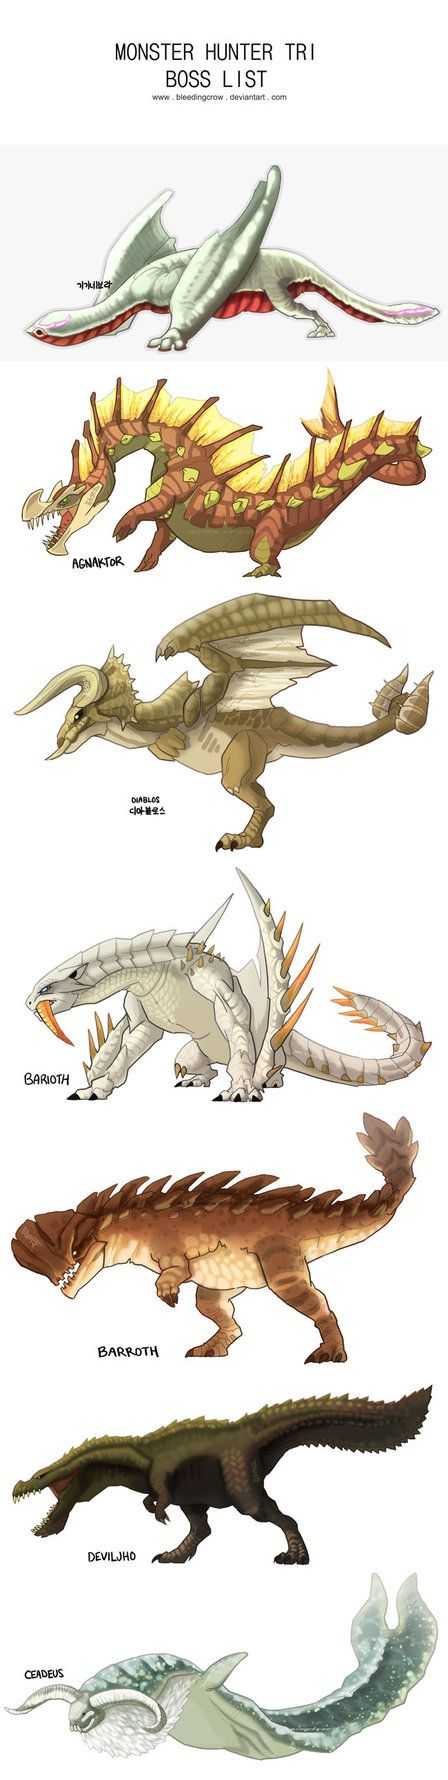 I always got really creeped out by the Gigginox XD like alright throw a gore magala at me but I'll only get exited, throw a Gigginox at me and ill cringe in my seat as I try my best to slay but not look ._.